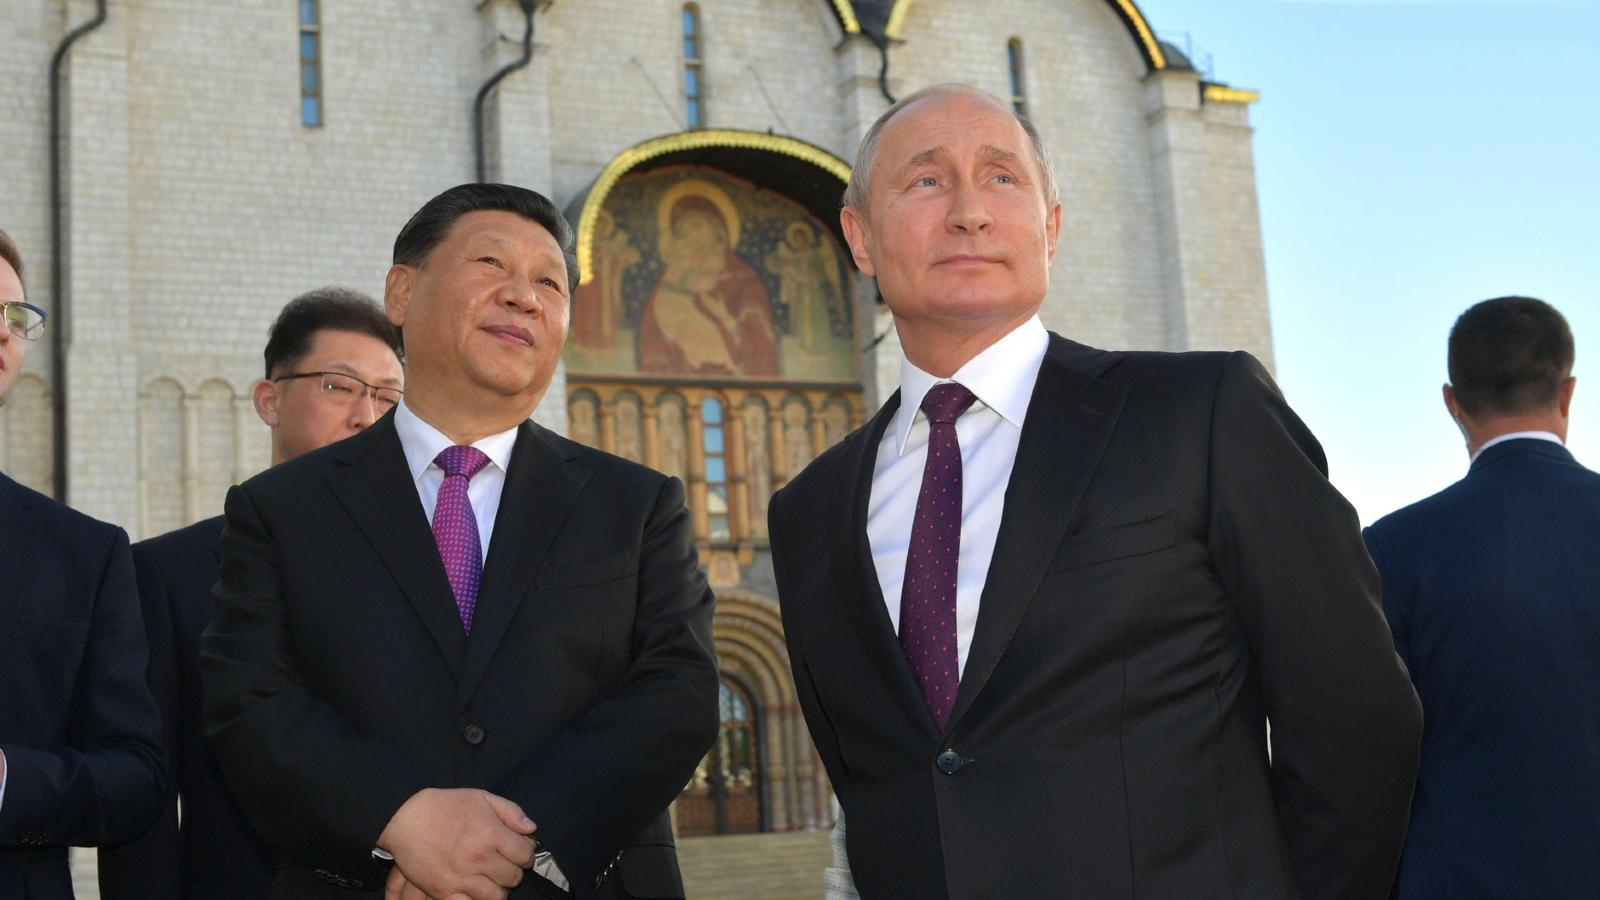 Photo: President Putin With President of the People's Republic of China Xi Jinping during a tour of the Moscow Kremlin. Credit: Kremlin